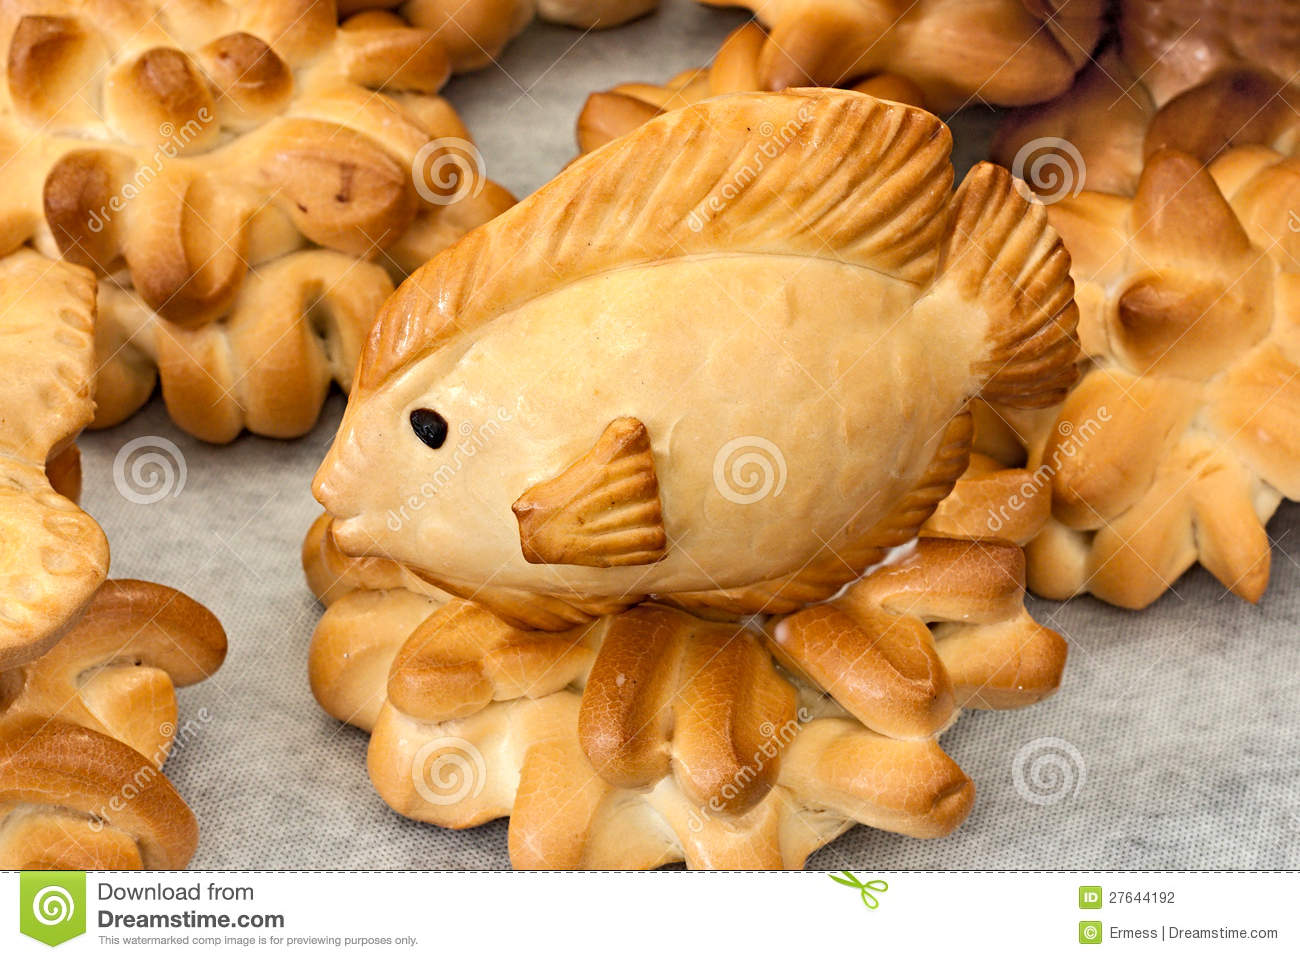 Fish of bread stock photography image 27644192 for Fish shaped bread